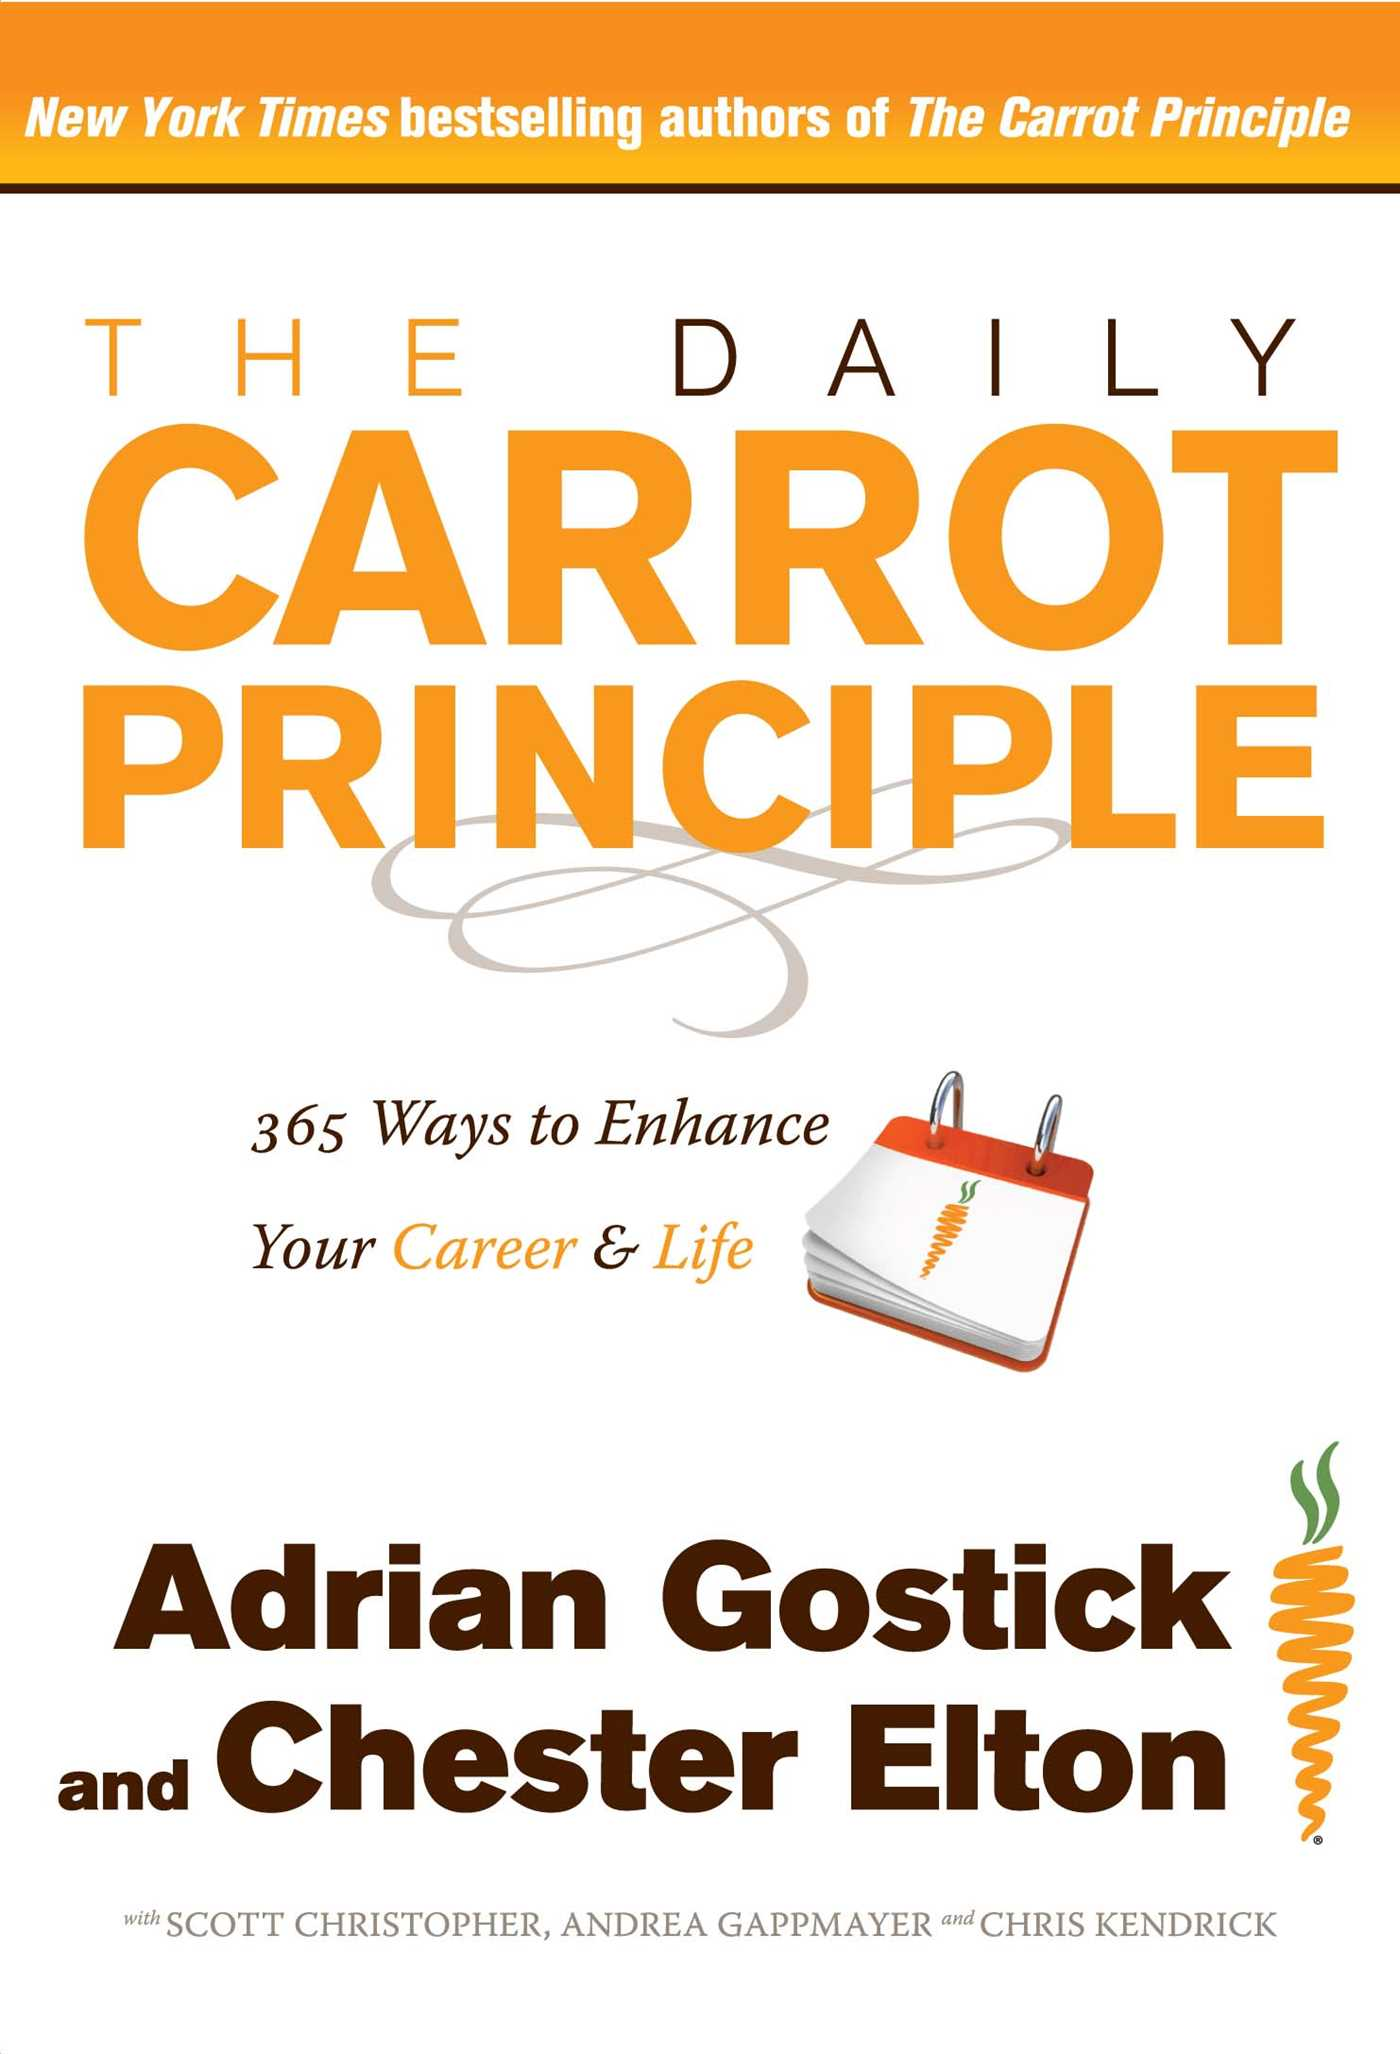 The-daily-carrot-principle-9781439194904_hr